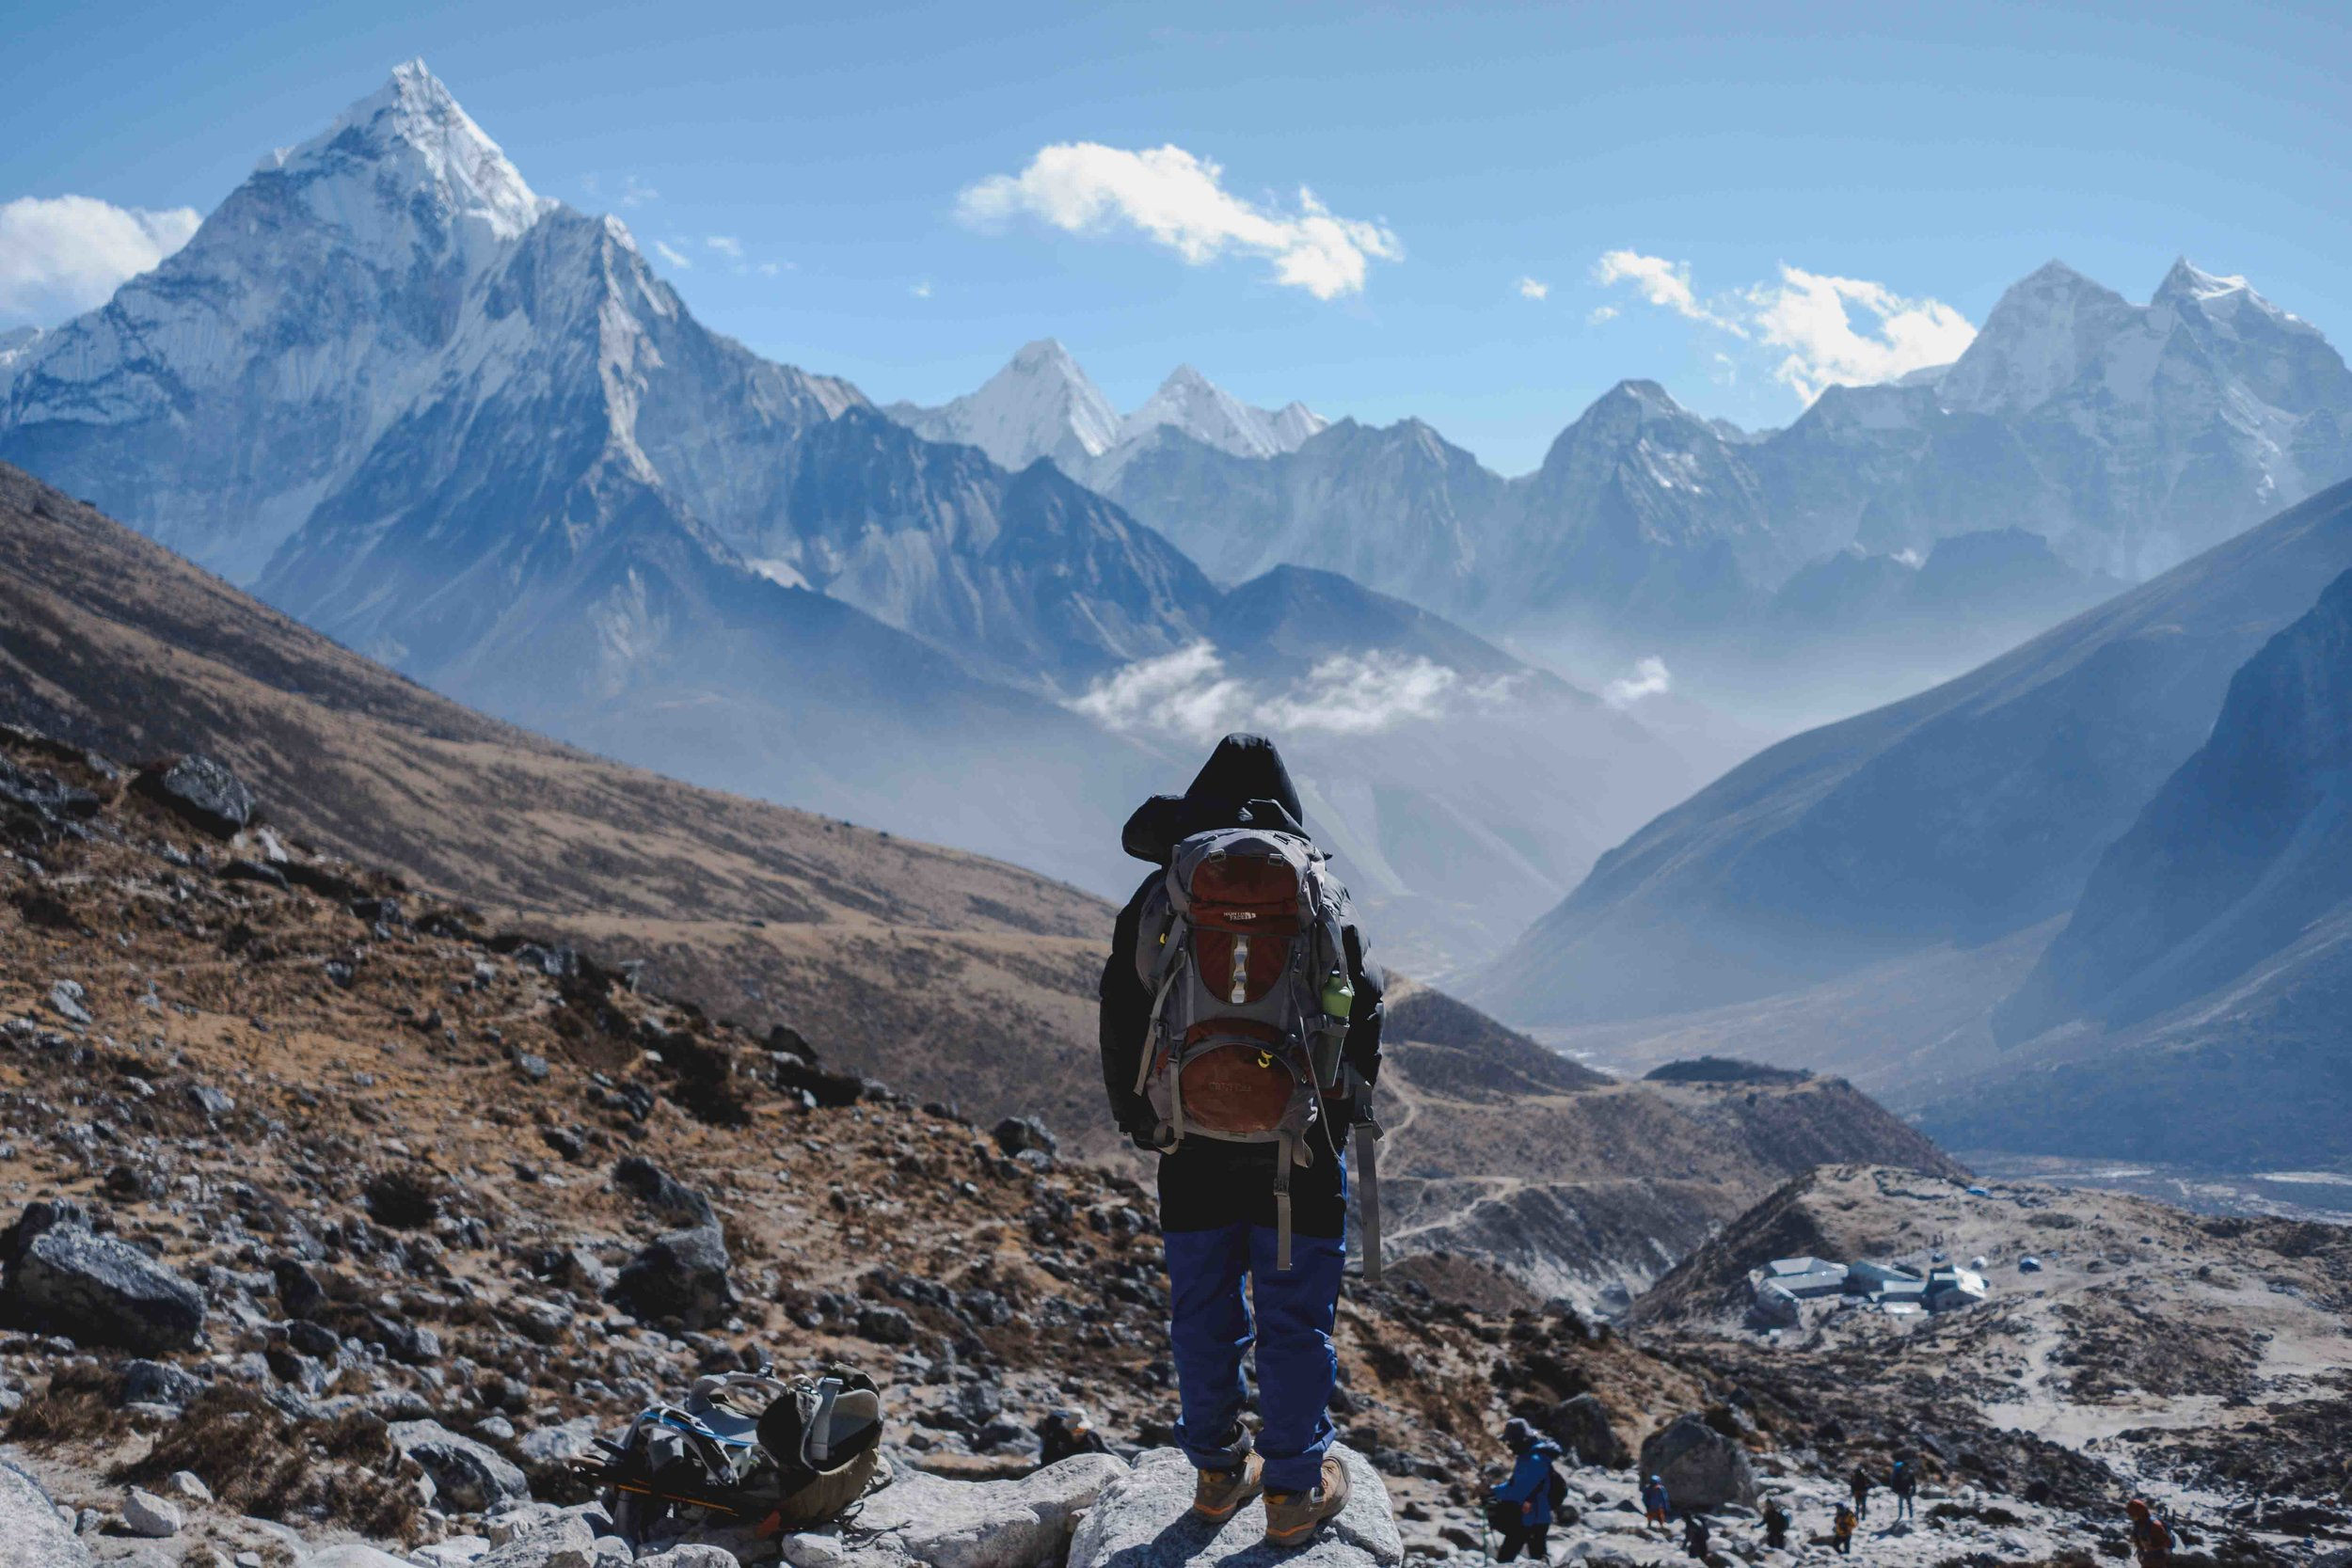 Anne standing just below Lobouche, Nepal on our 2018 trek to Everest Base Camp.